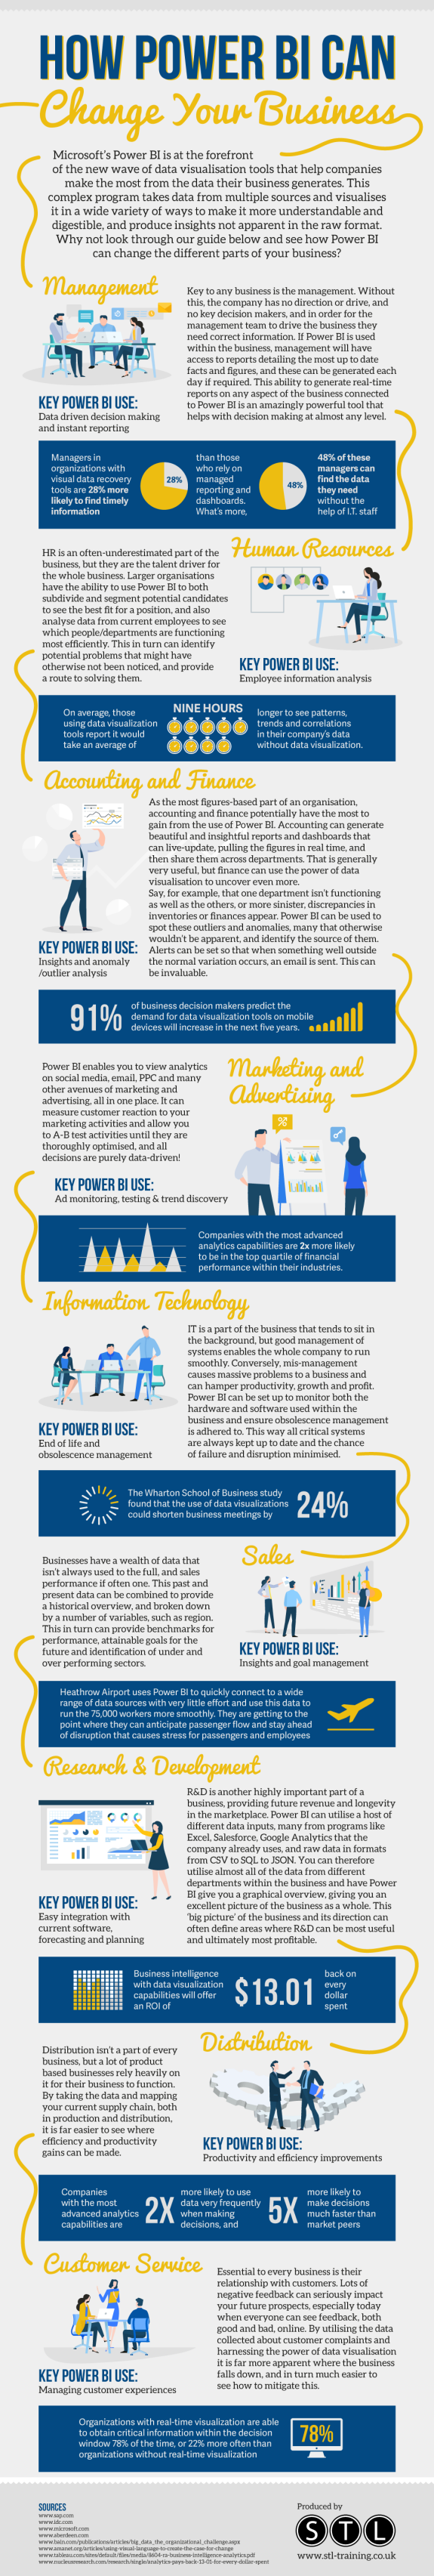 How Power BI Can Change Your Business